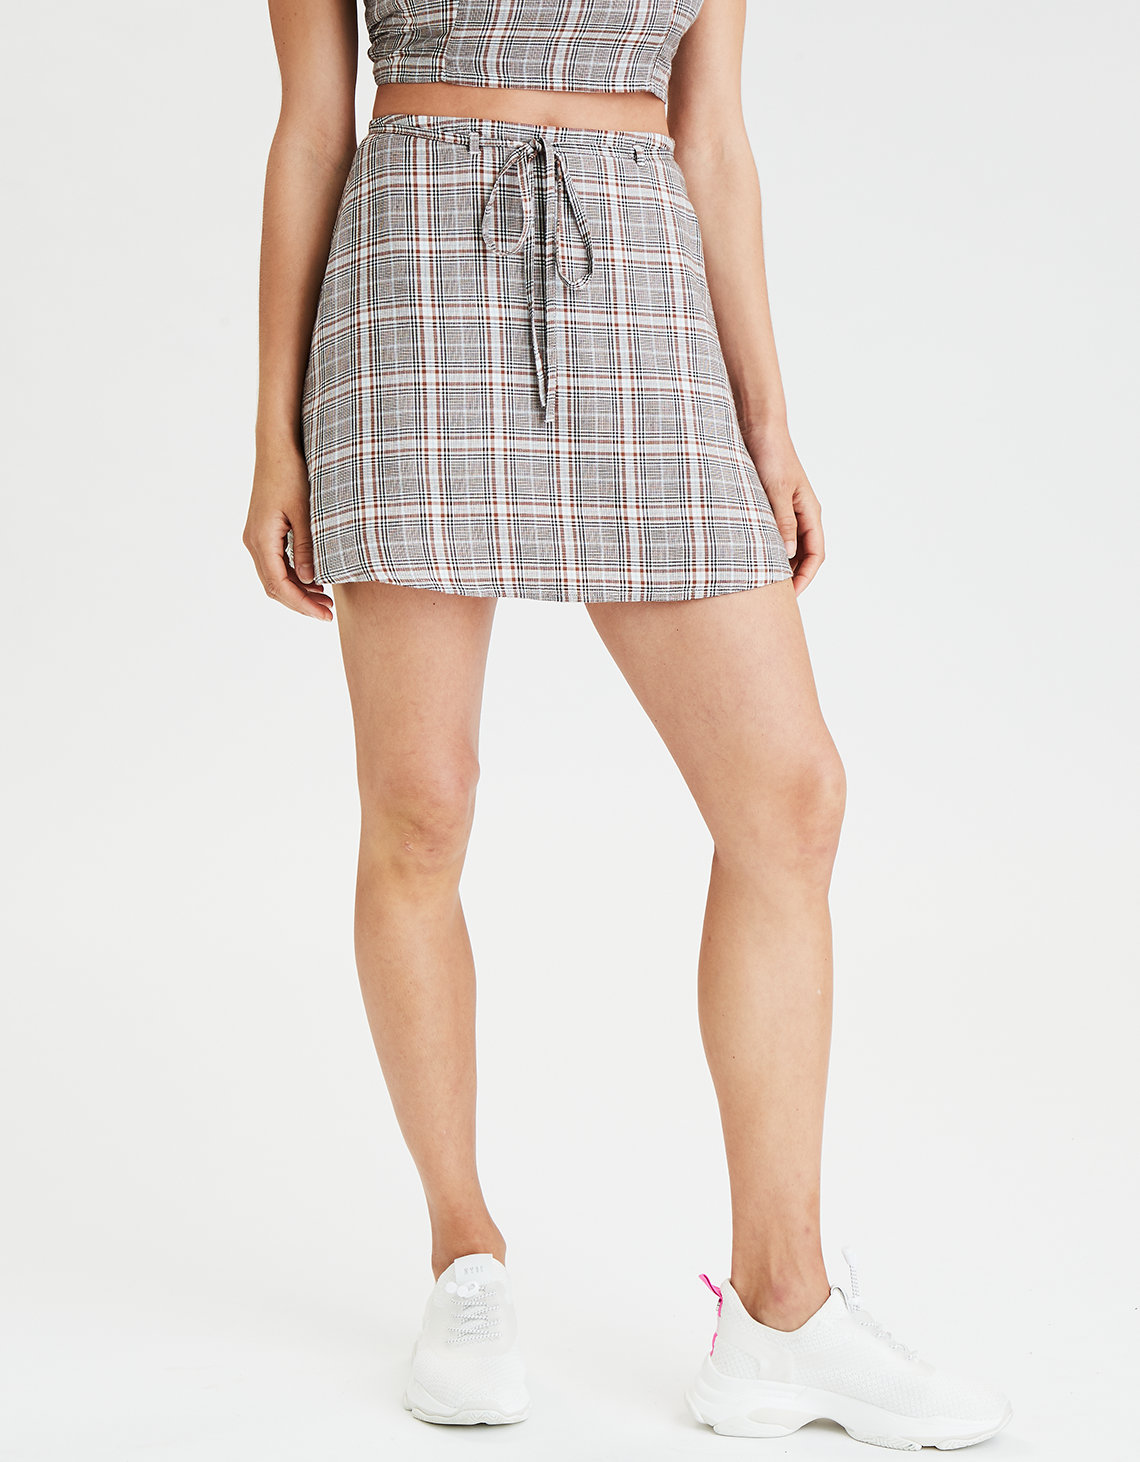 AE High-Waisted Plaid Skirt